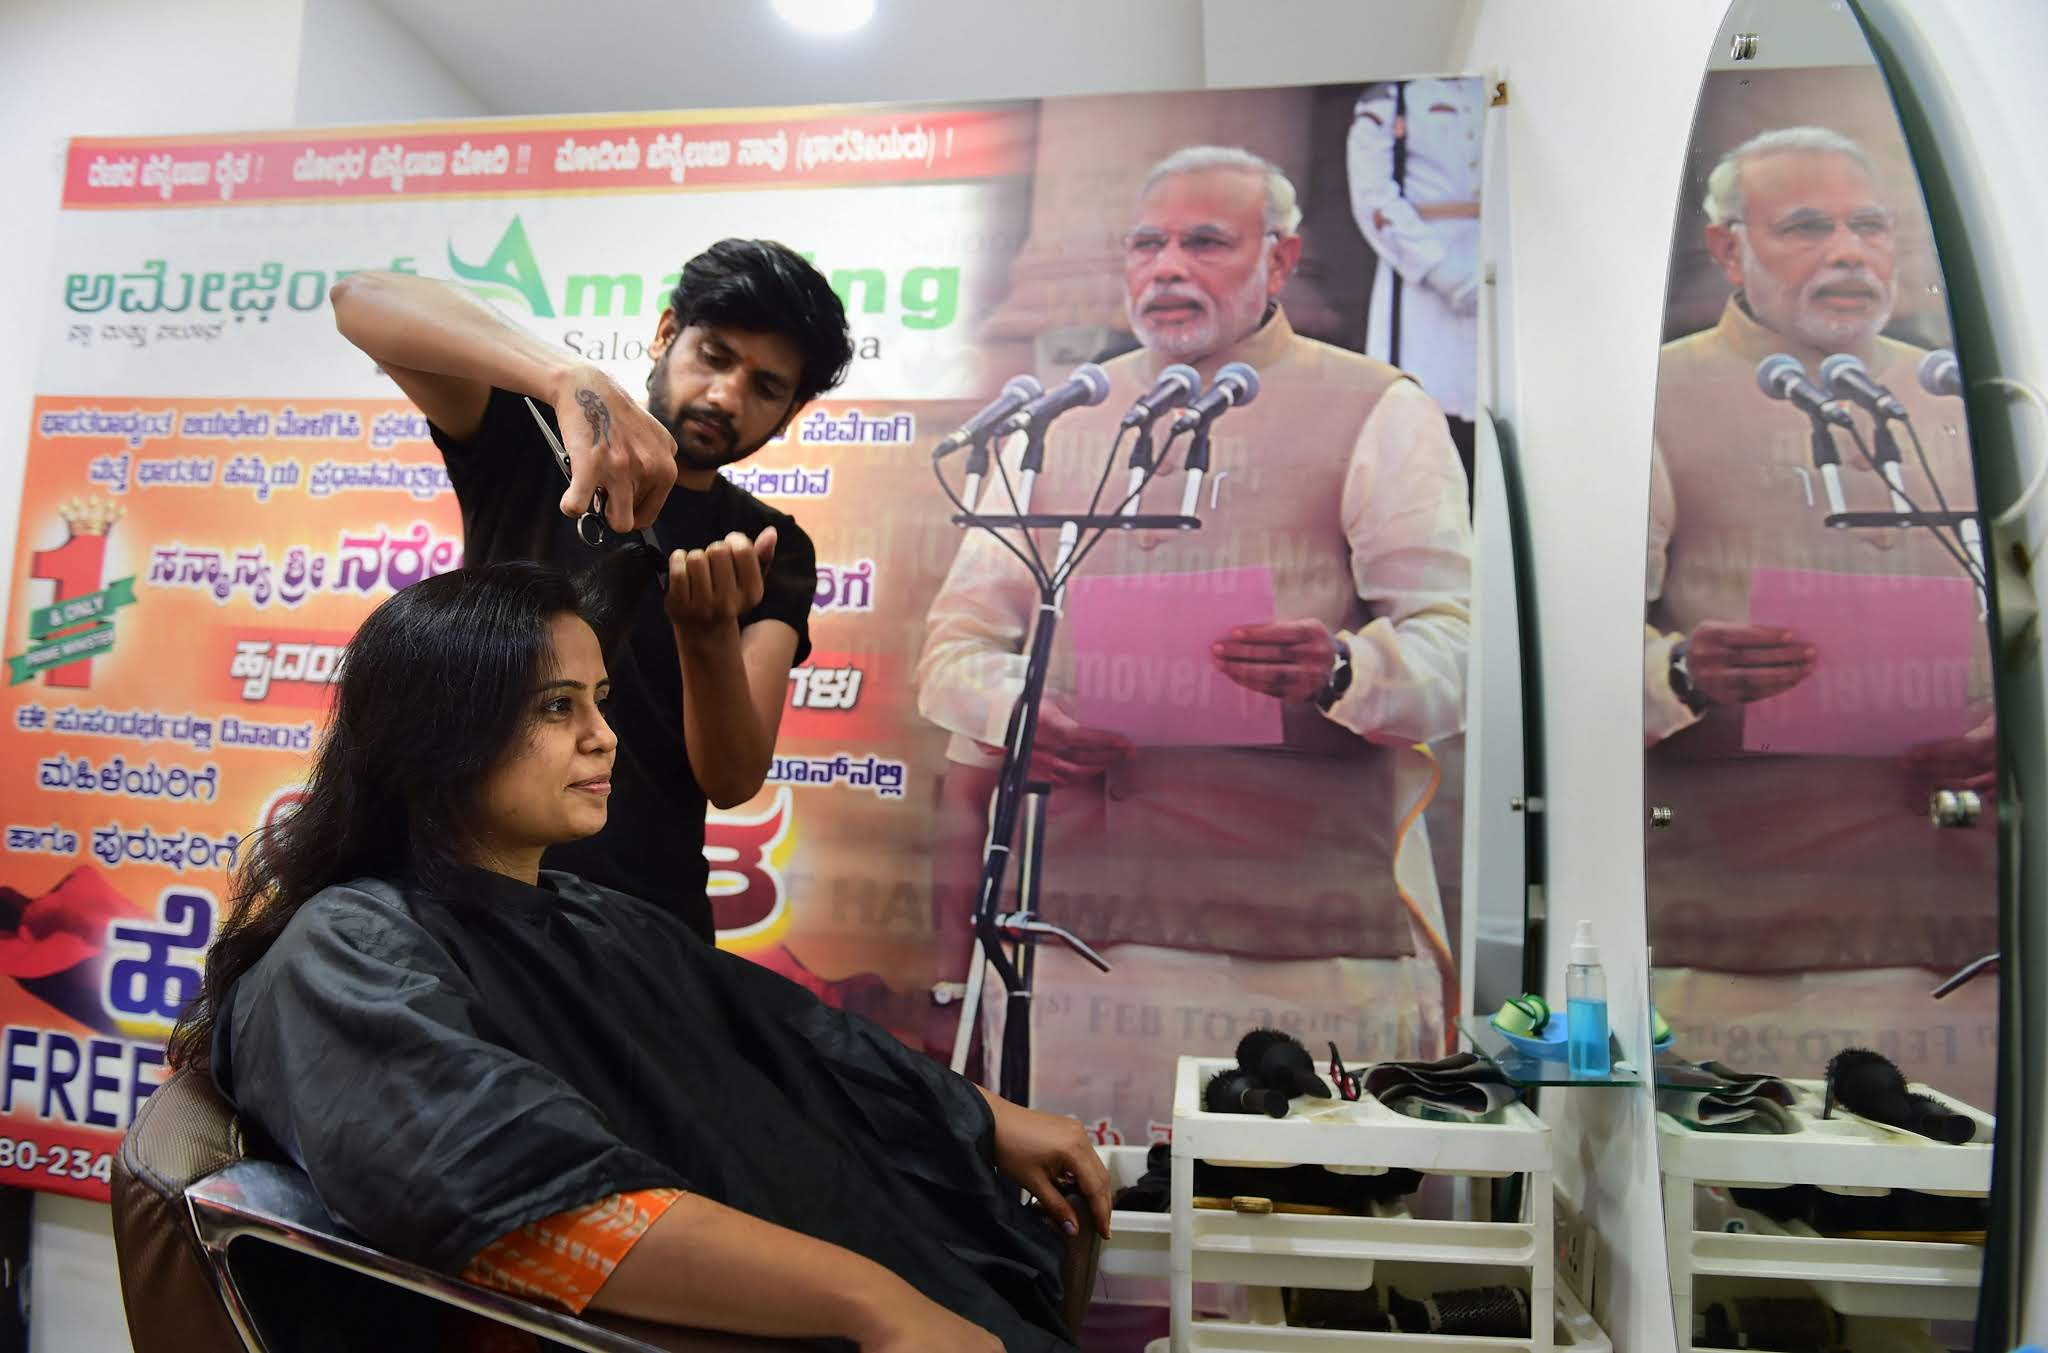 Salon Celebrates PM Narendra Modi's Swearing-in Ceremony by Giving Free Haircuts to Customers